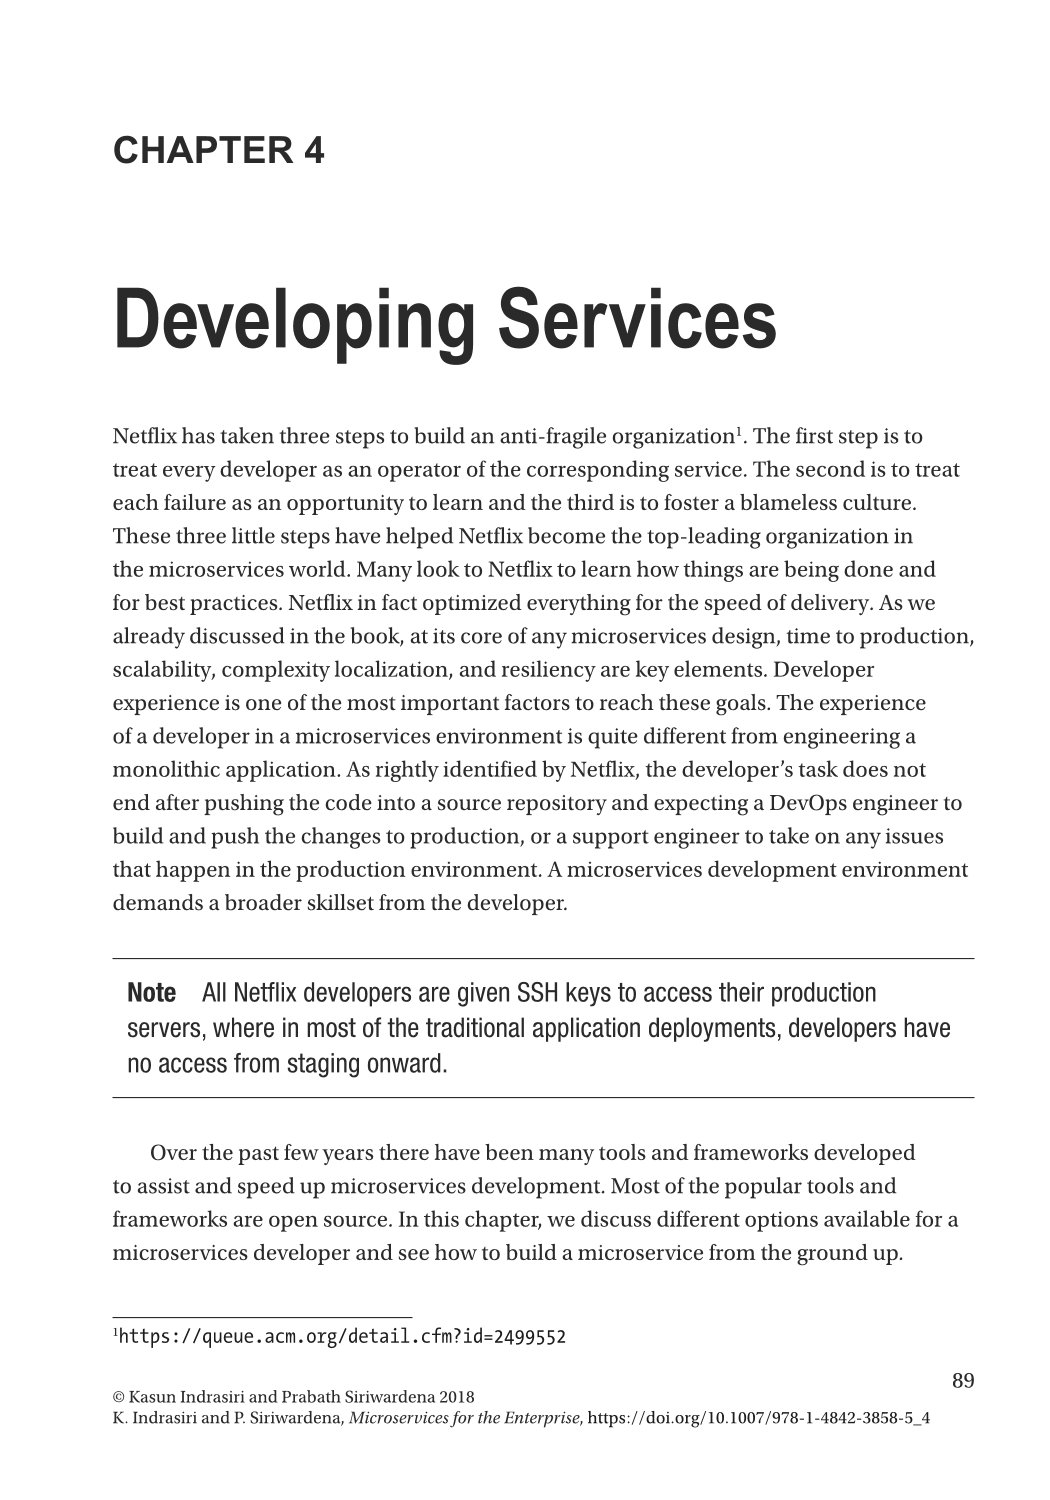 Microservices for the Enterprise: Designing, Developing, and Deploying-preview-3